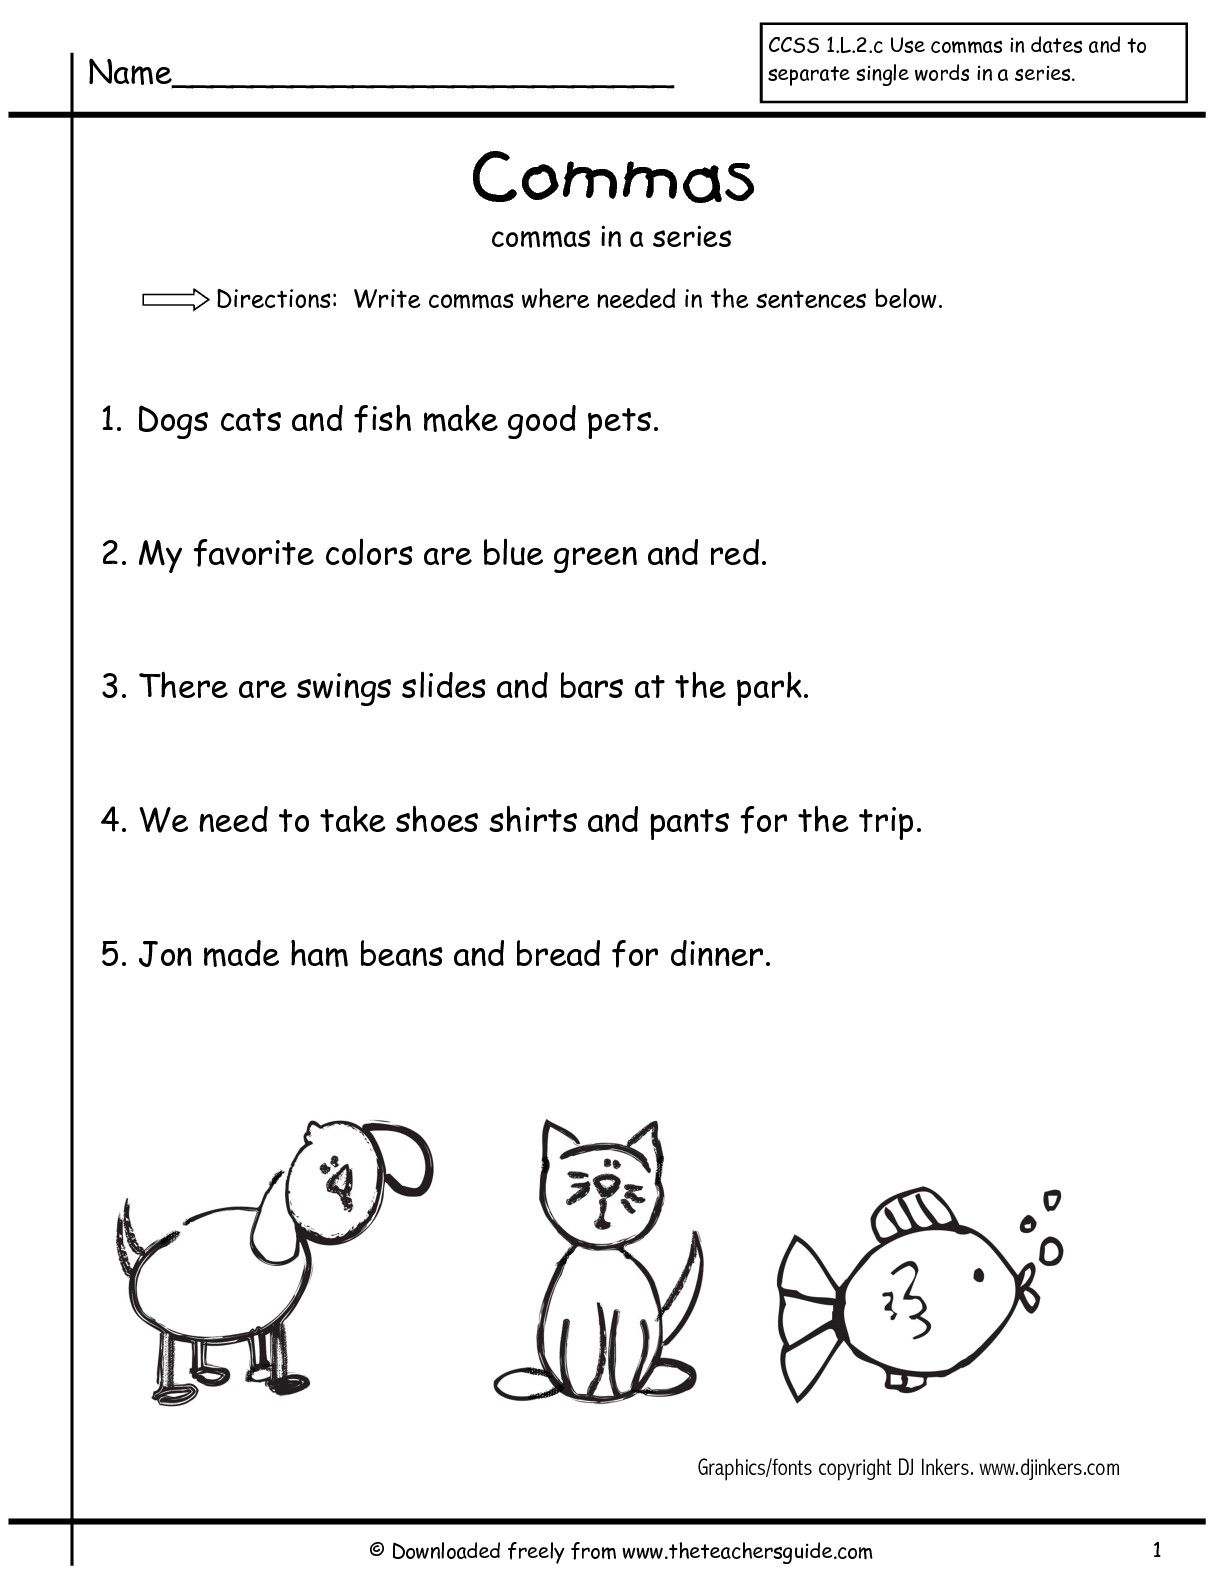 Worksheets Commas Worksheets grammar worksheets commas in a series first grade free comma worksheets